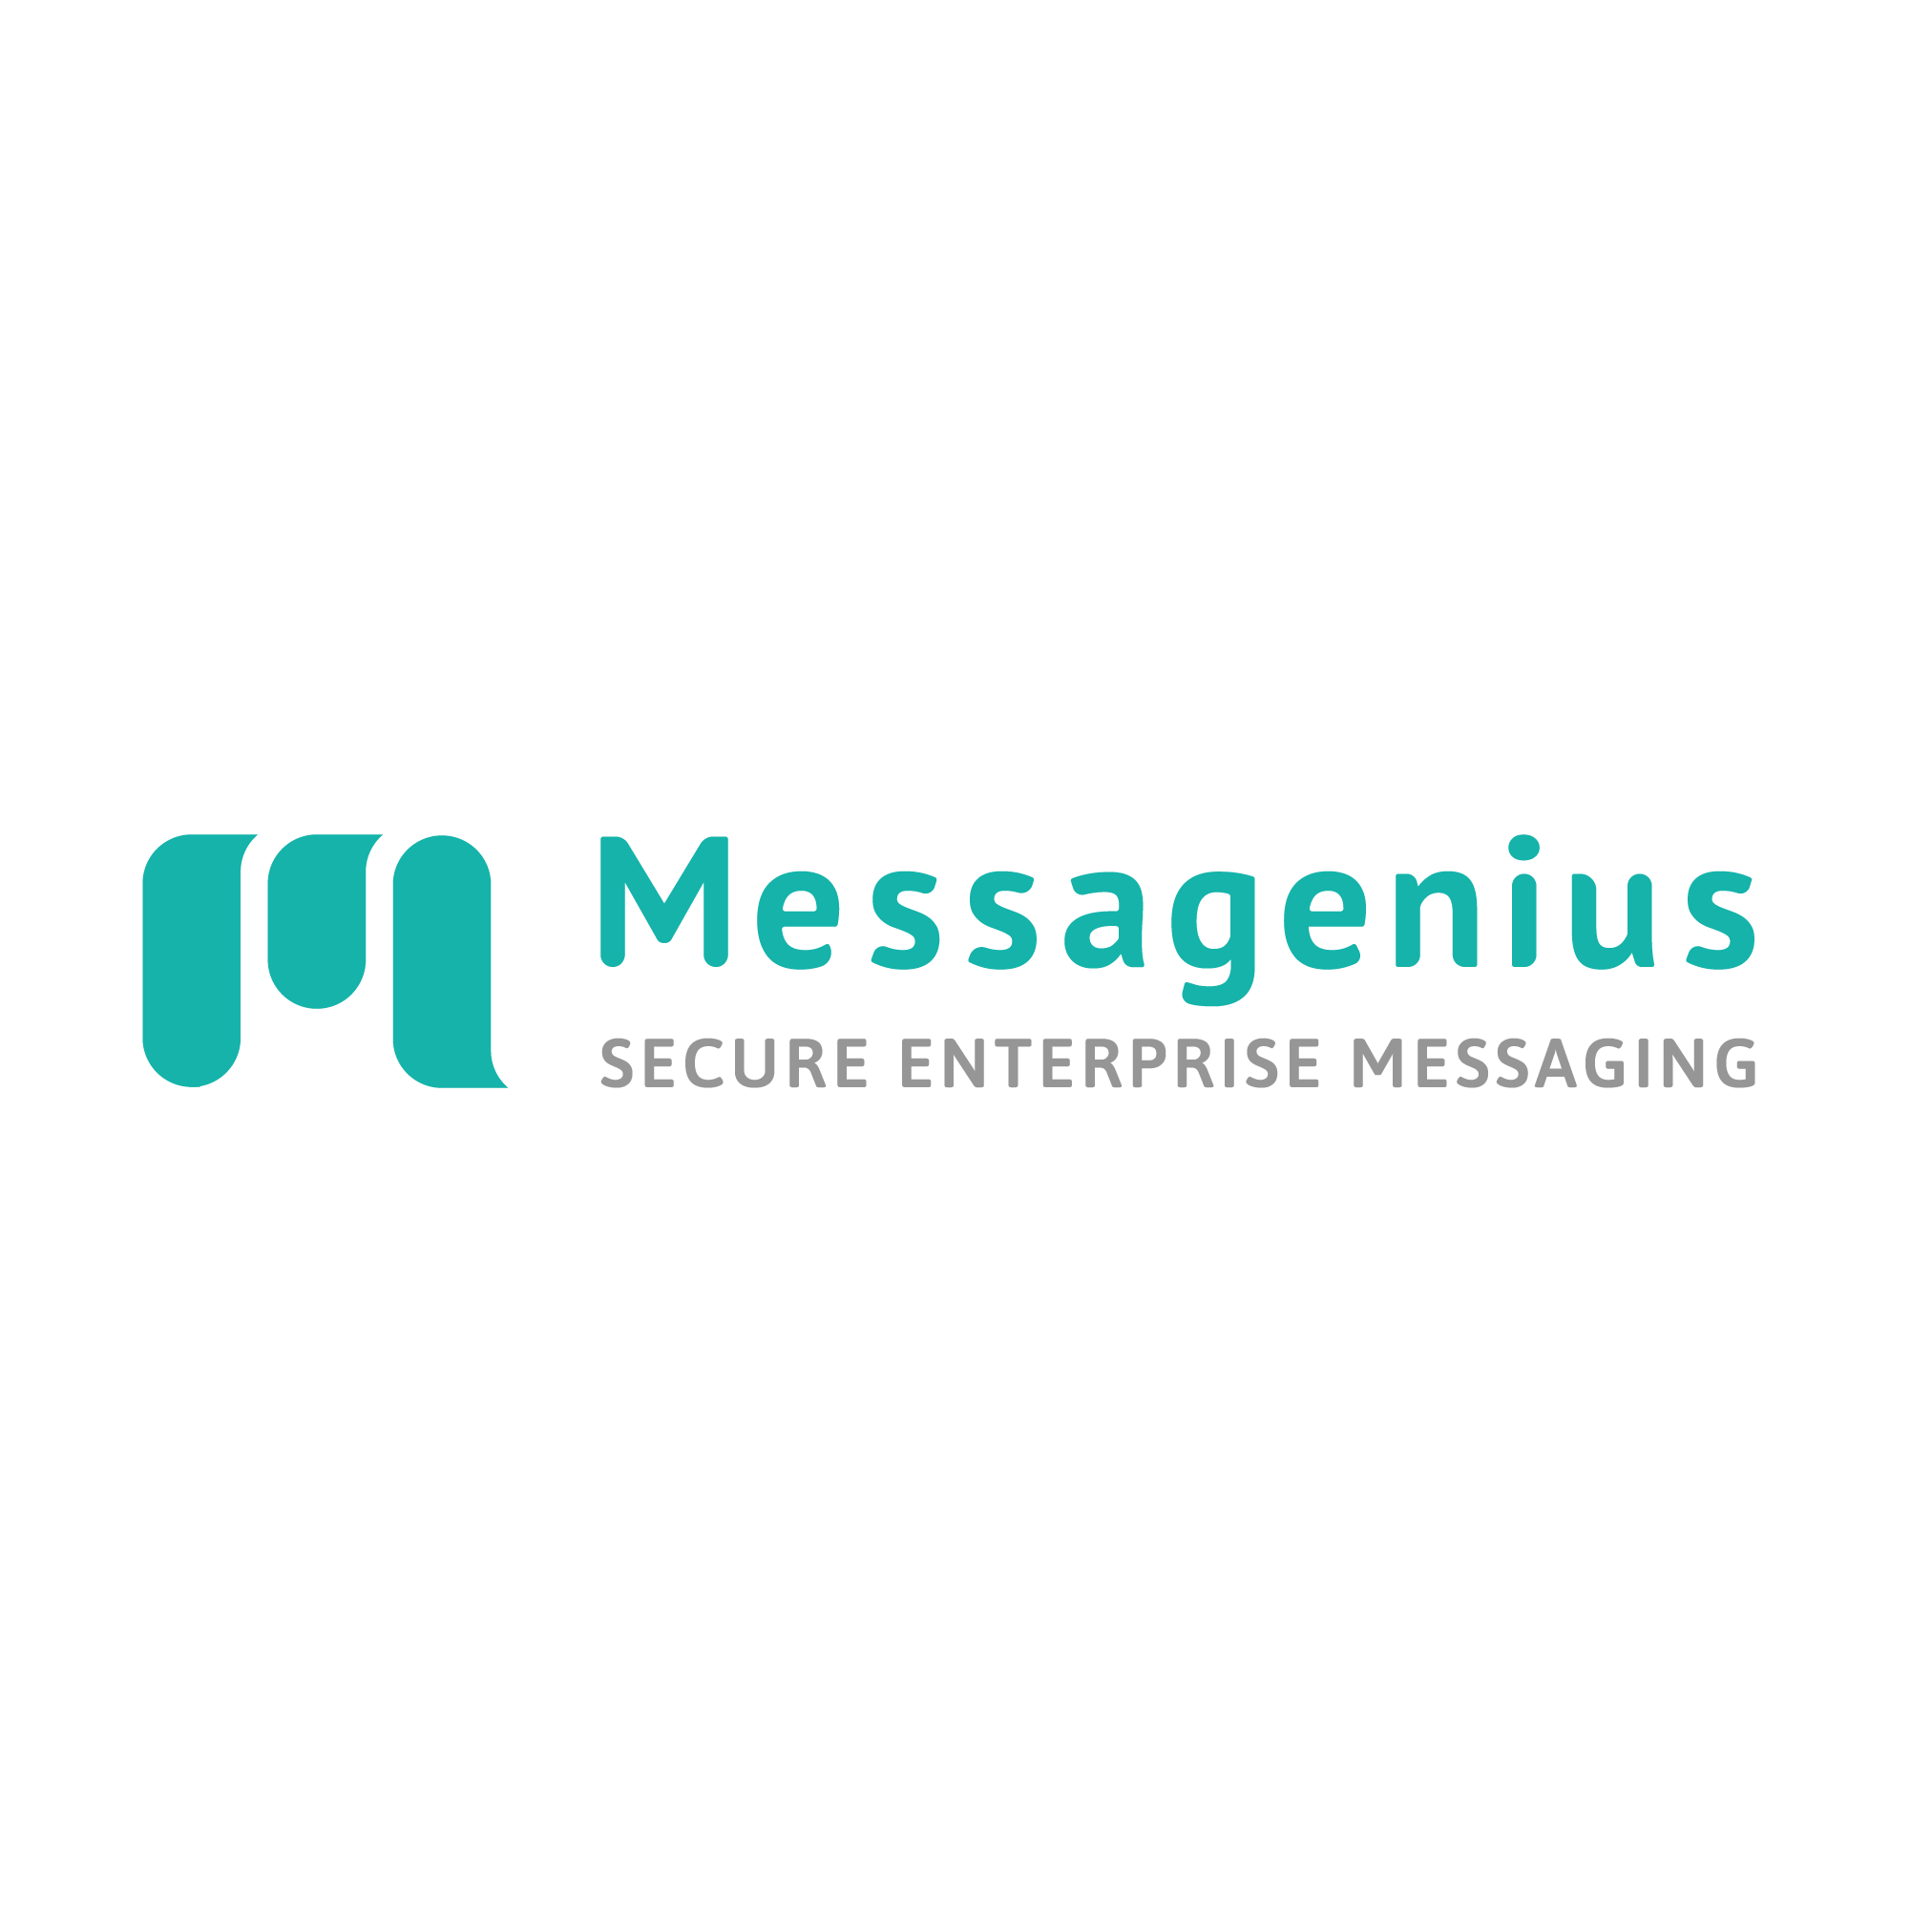 messagenius logo sq.png